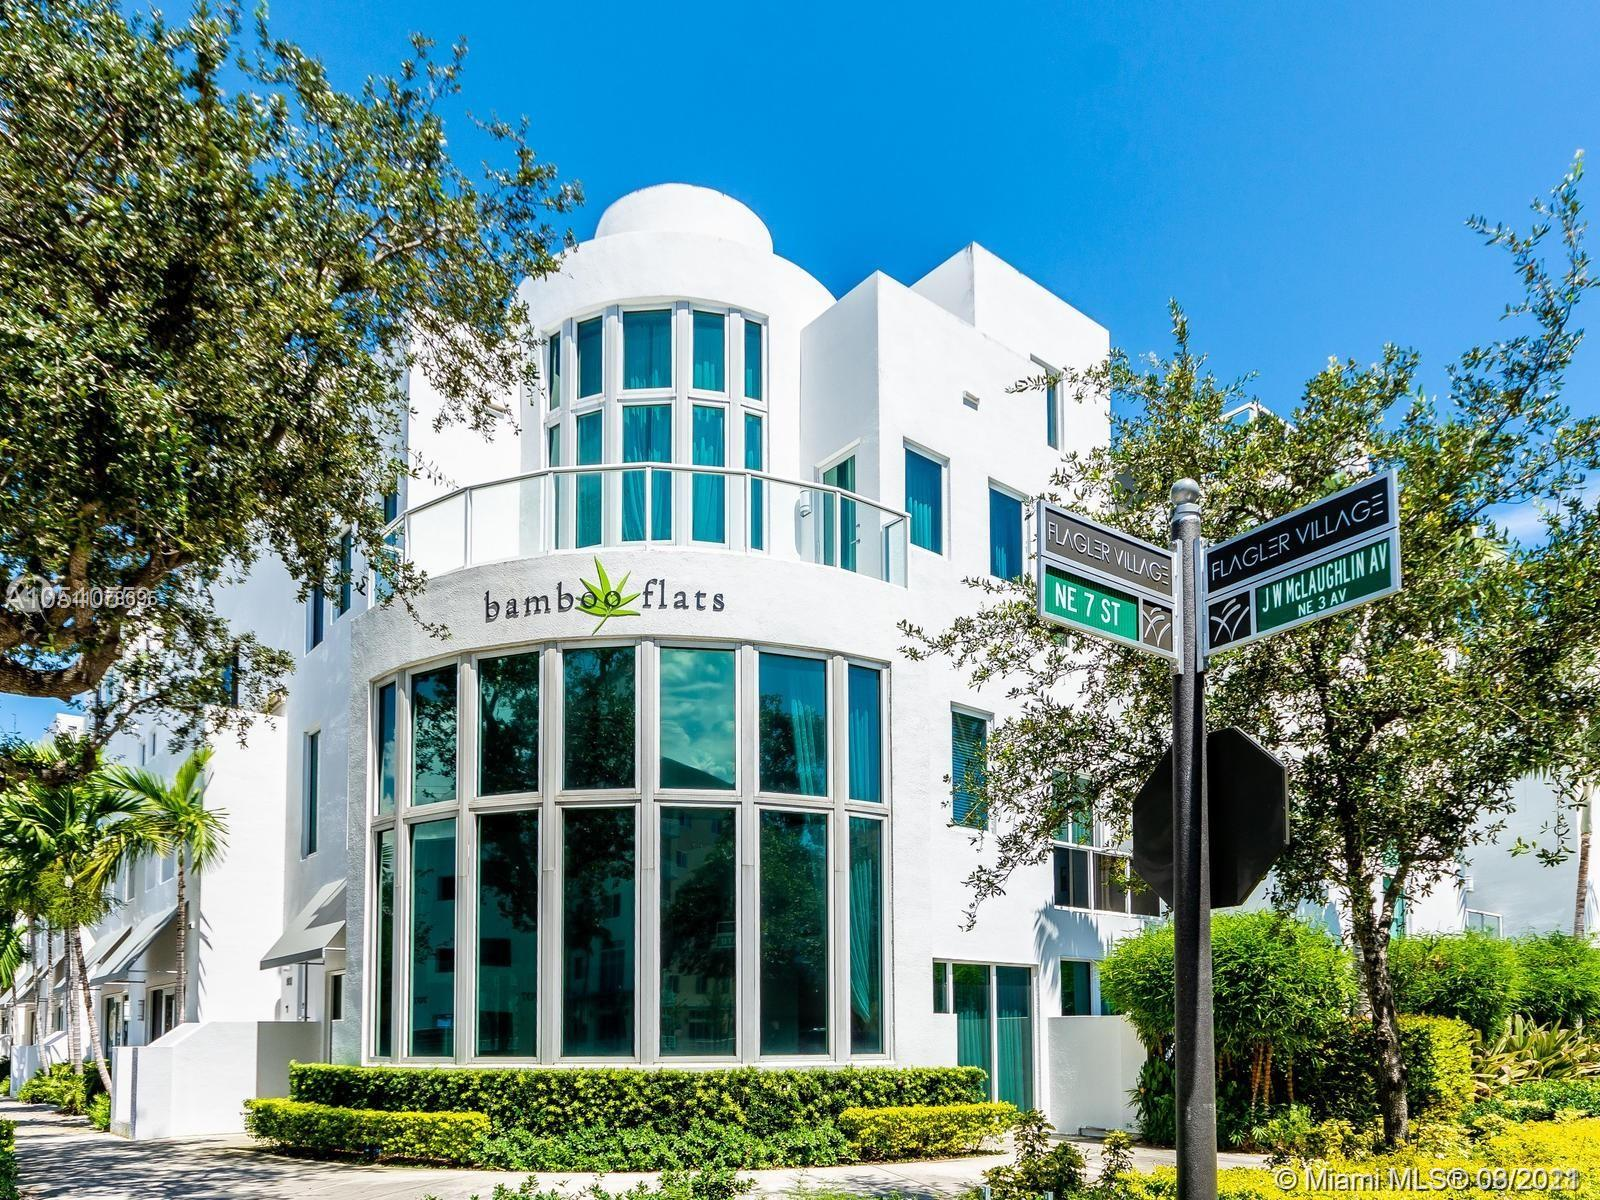 A hidden gem in the heart of downtown Ft. Lauderdale. A lush tropical setting that overlooks the skyline of beautiful Ft. Lauderdale. Located in the art district of Flagler Village, close to Las Olas and the beaches; this property is a perfect oasis in the growing city.  Impact glass throughout, espresso wood floors and saturnia in the living area. High ceilings, studio lighting, and an amazing rooftop space.